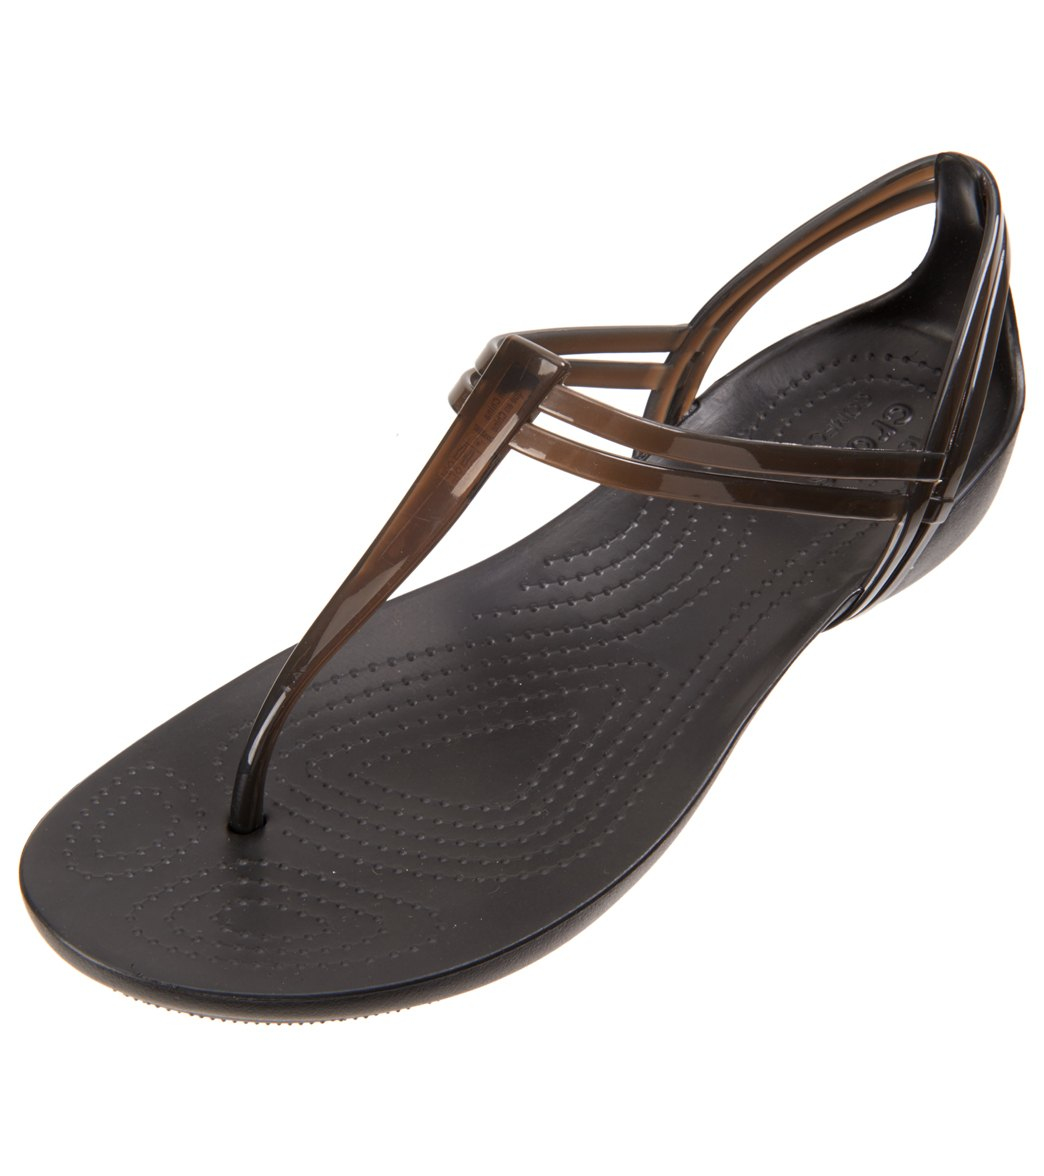 a07209d950a0b Crocs Women s Crocs Isabella T-Strap at SwimOutlet.com